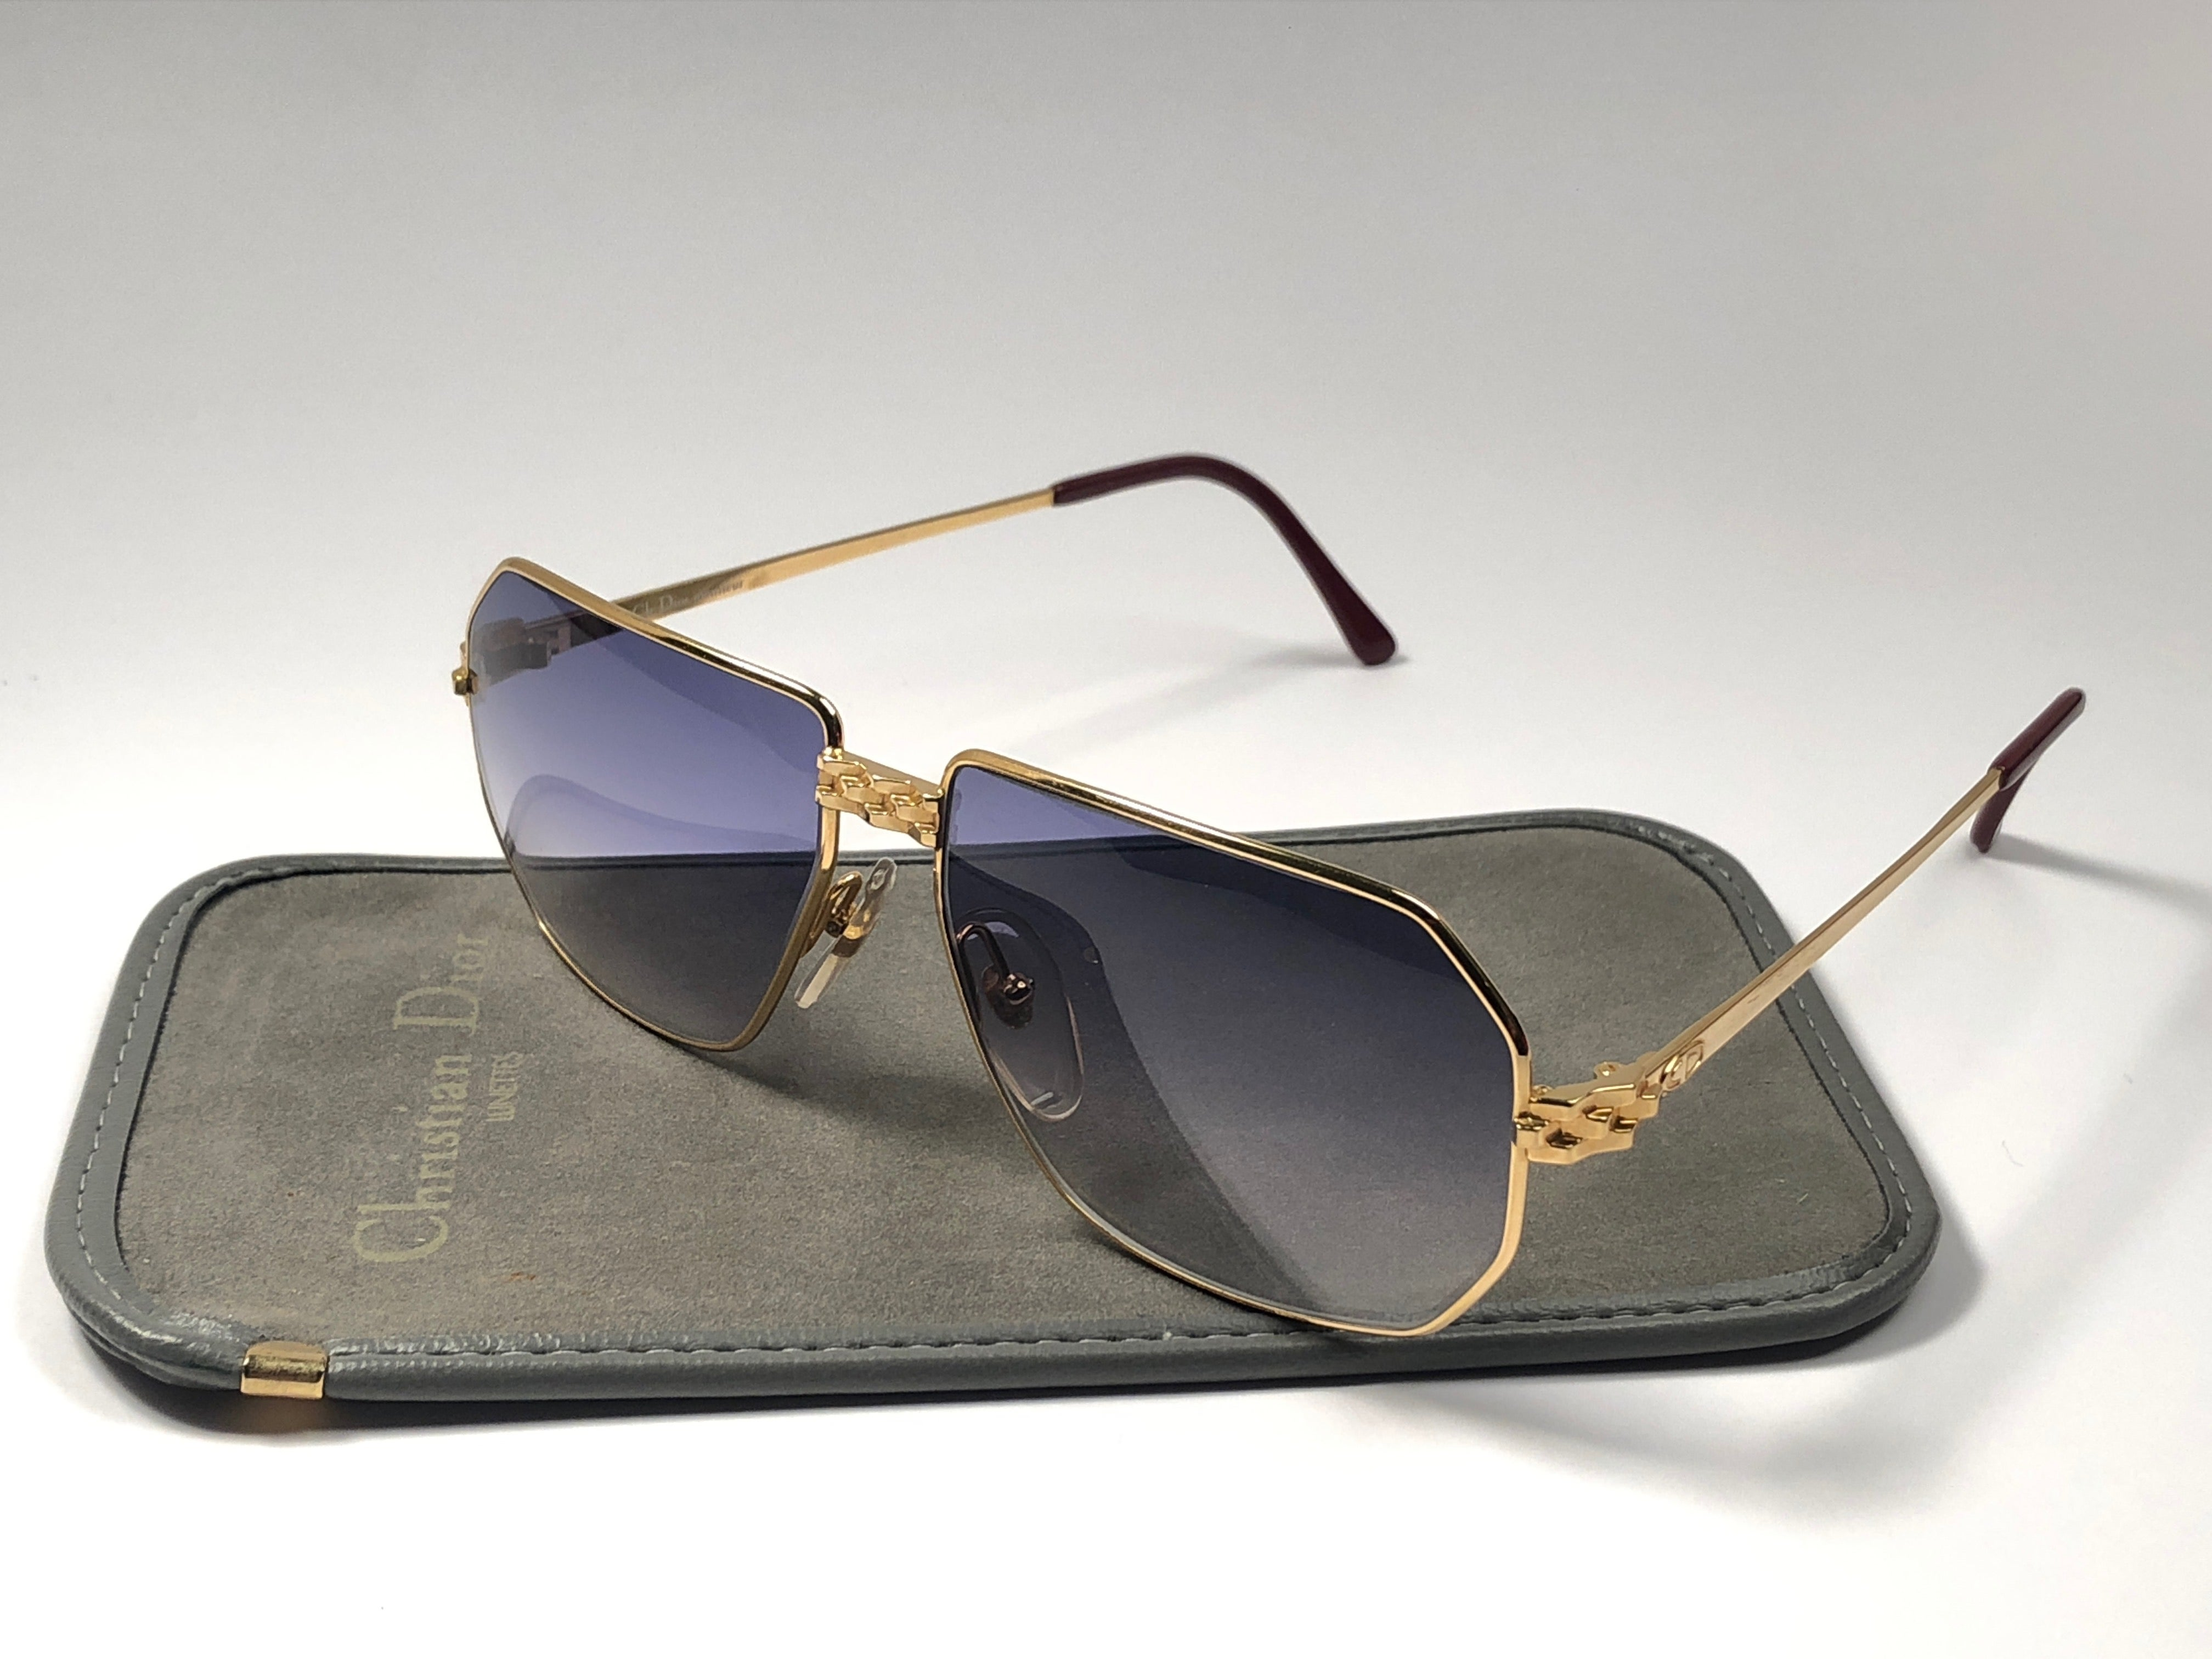 47381d6f4e9 New Vintage Christian Dior Monsieur 2391 Gold Panthere Sunglasses 1970 s  Austria at 1stdibs